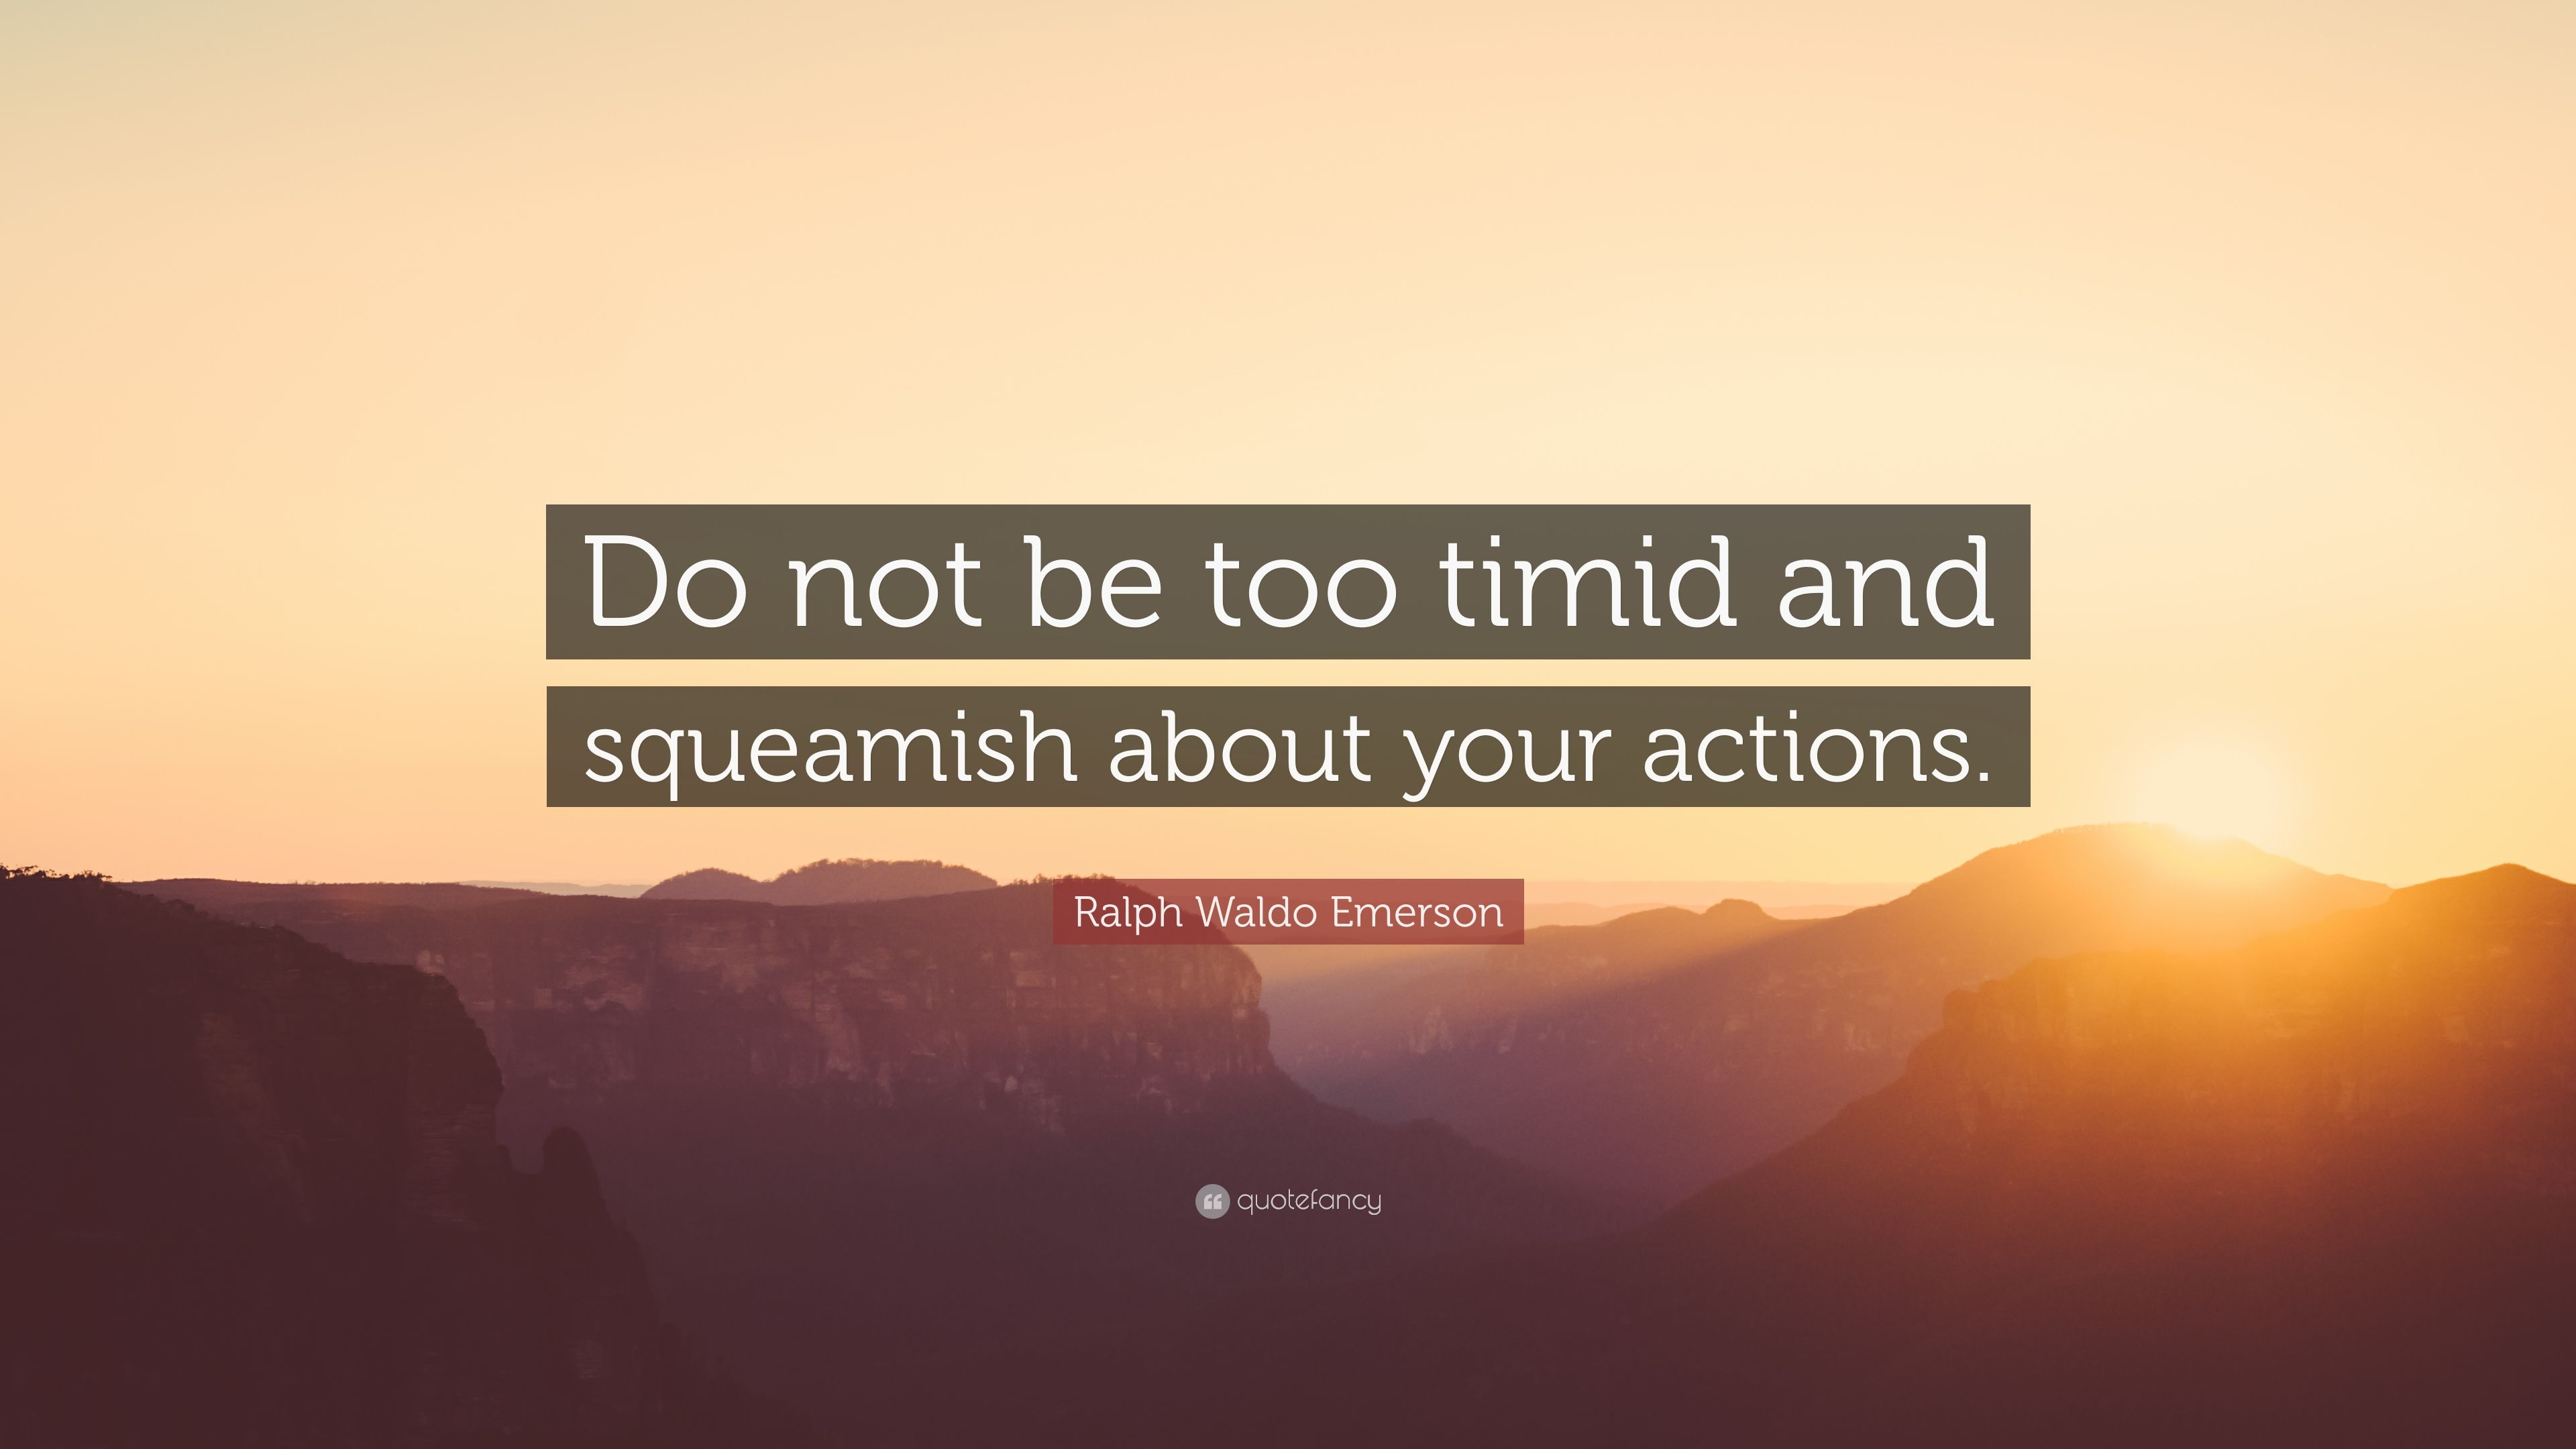 Ralph Waldo Emerson Quote Do Not Be Too Timid And Squeamish About Your Actions 7 Wallpapers Quotefancy Tootimid.com is a member of vimeo, the home for high quality videos and the people who love them. quotefancy